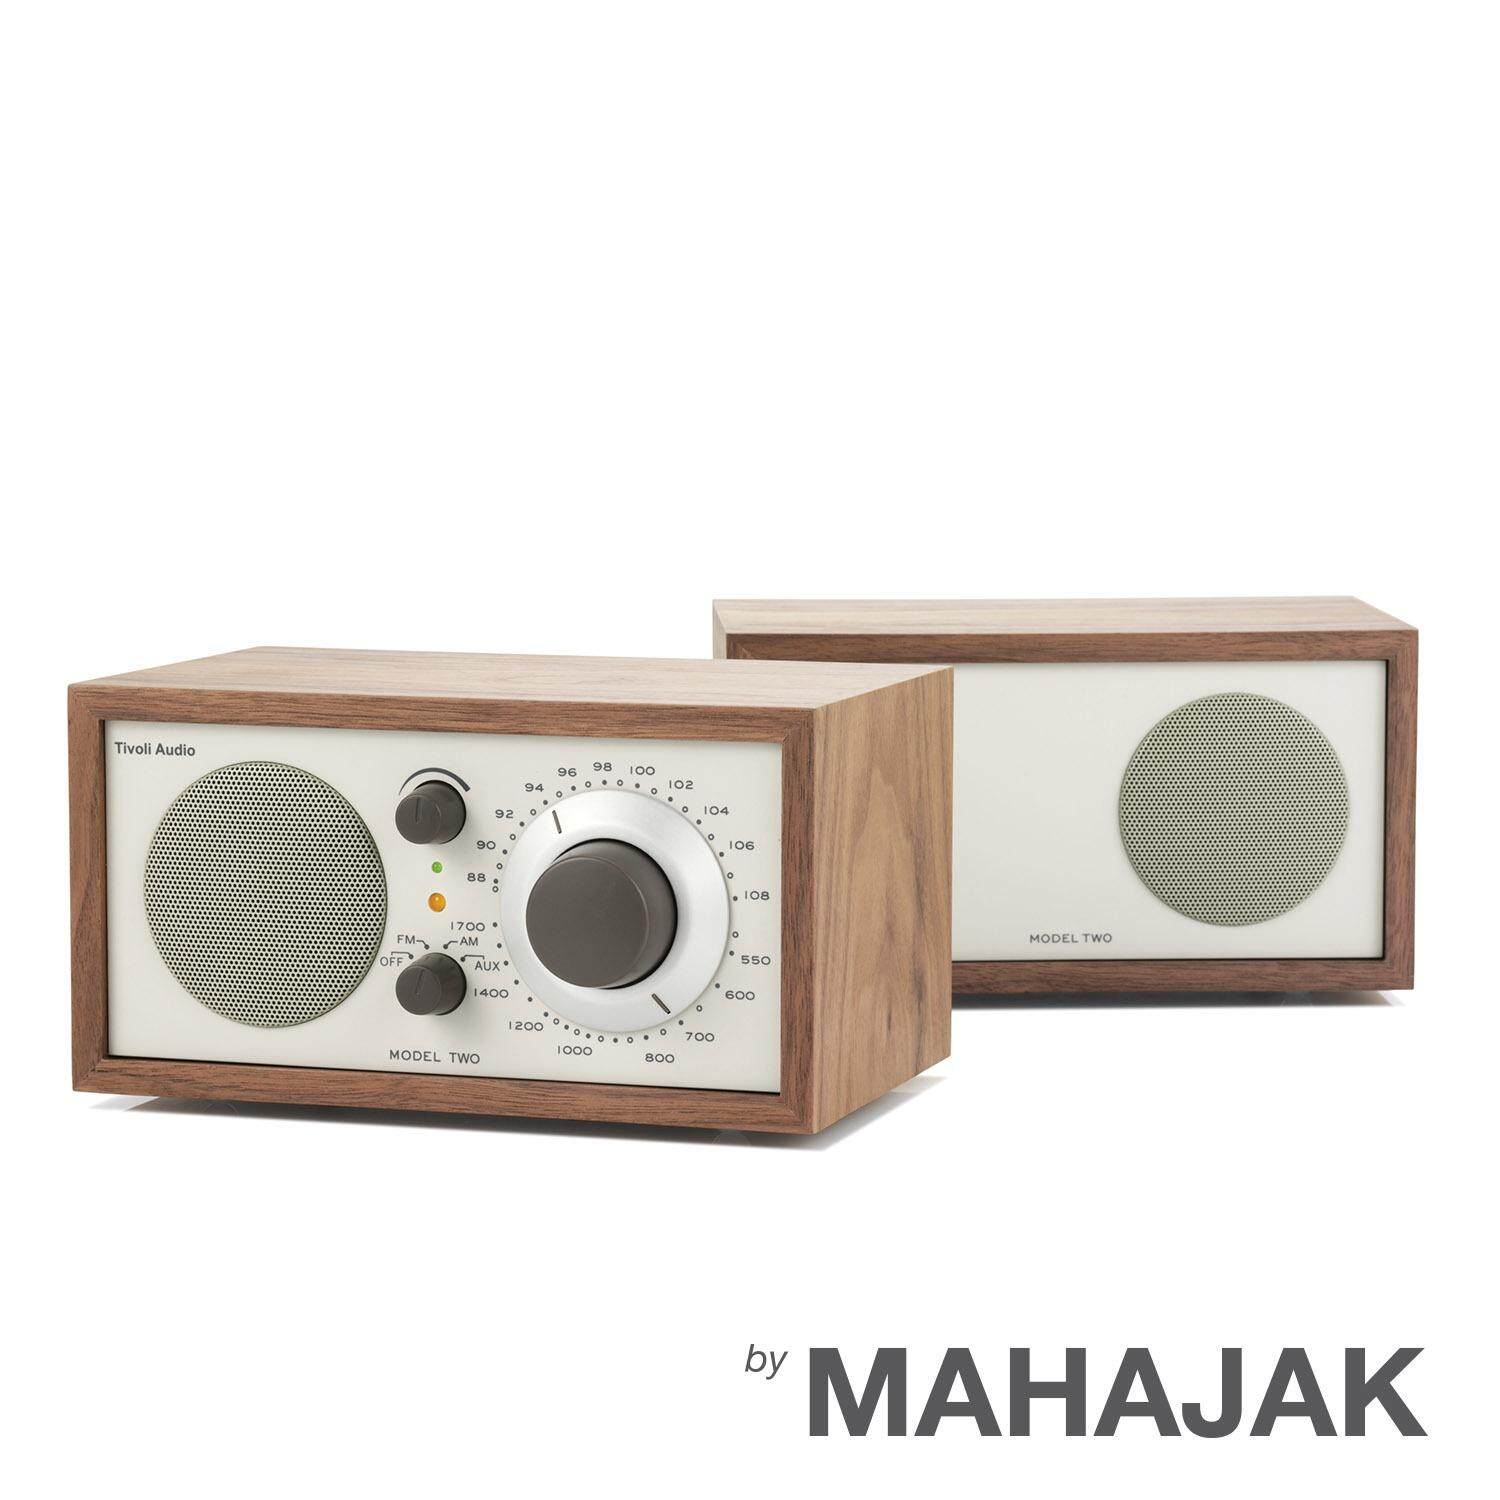 TIVOLI MODEL TWO STEREO (Walnut/Beige)